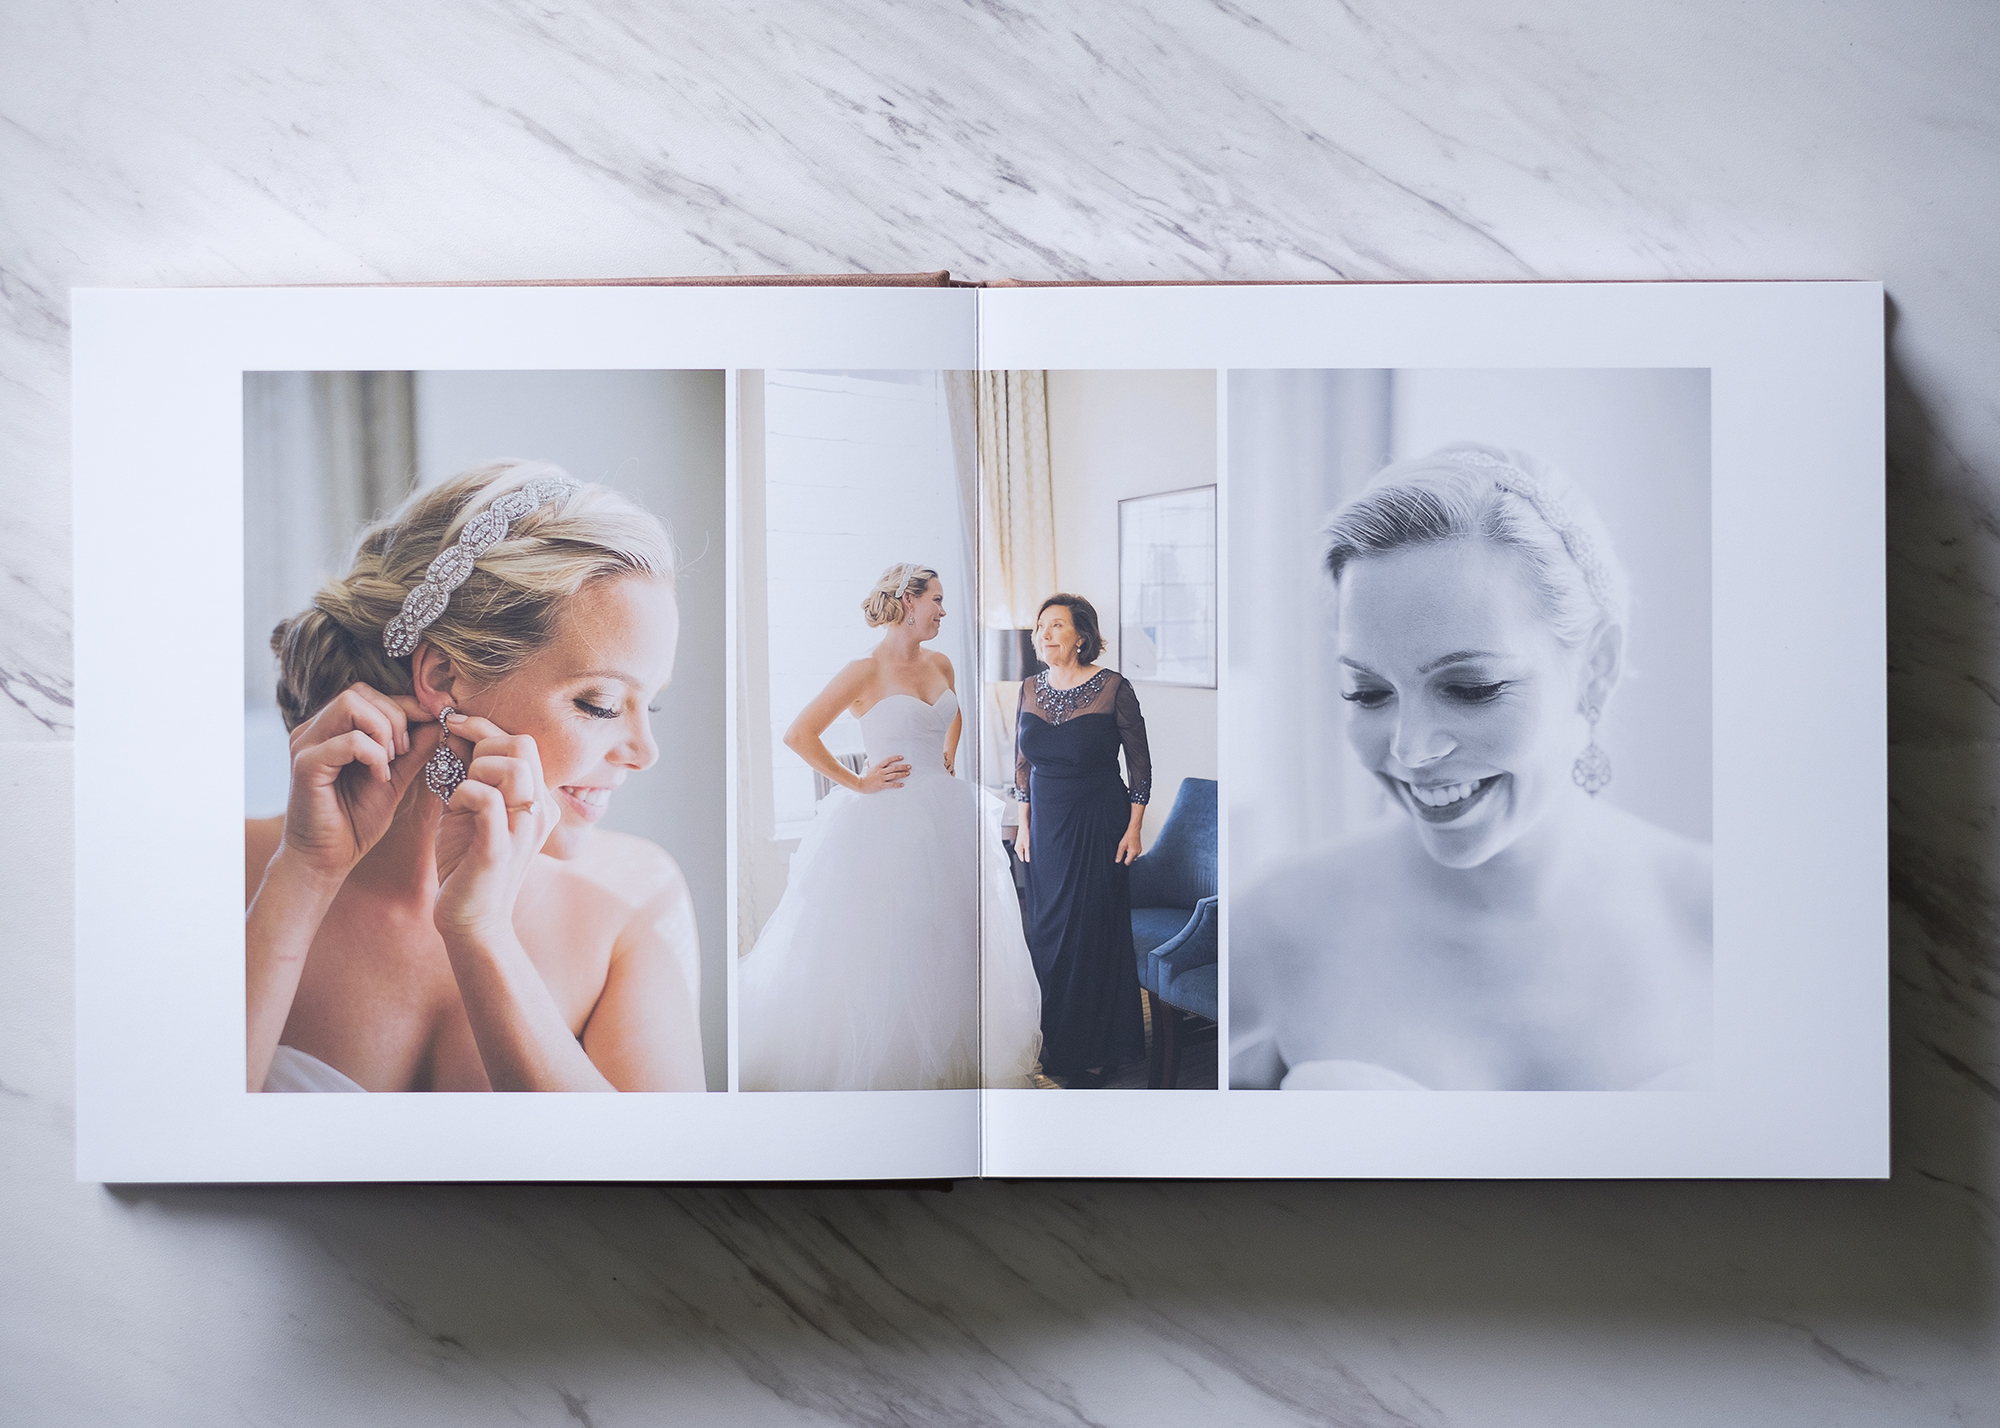 This is not your parents' wedding album. No slip-in prints, no tacky paper holding images in place